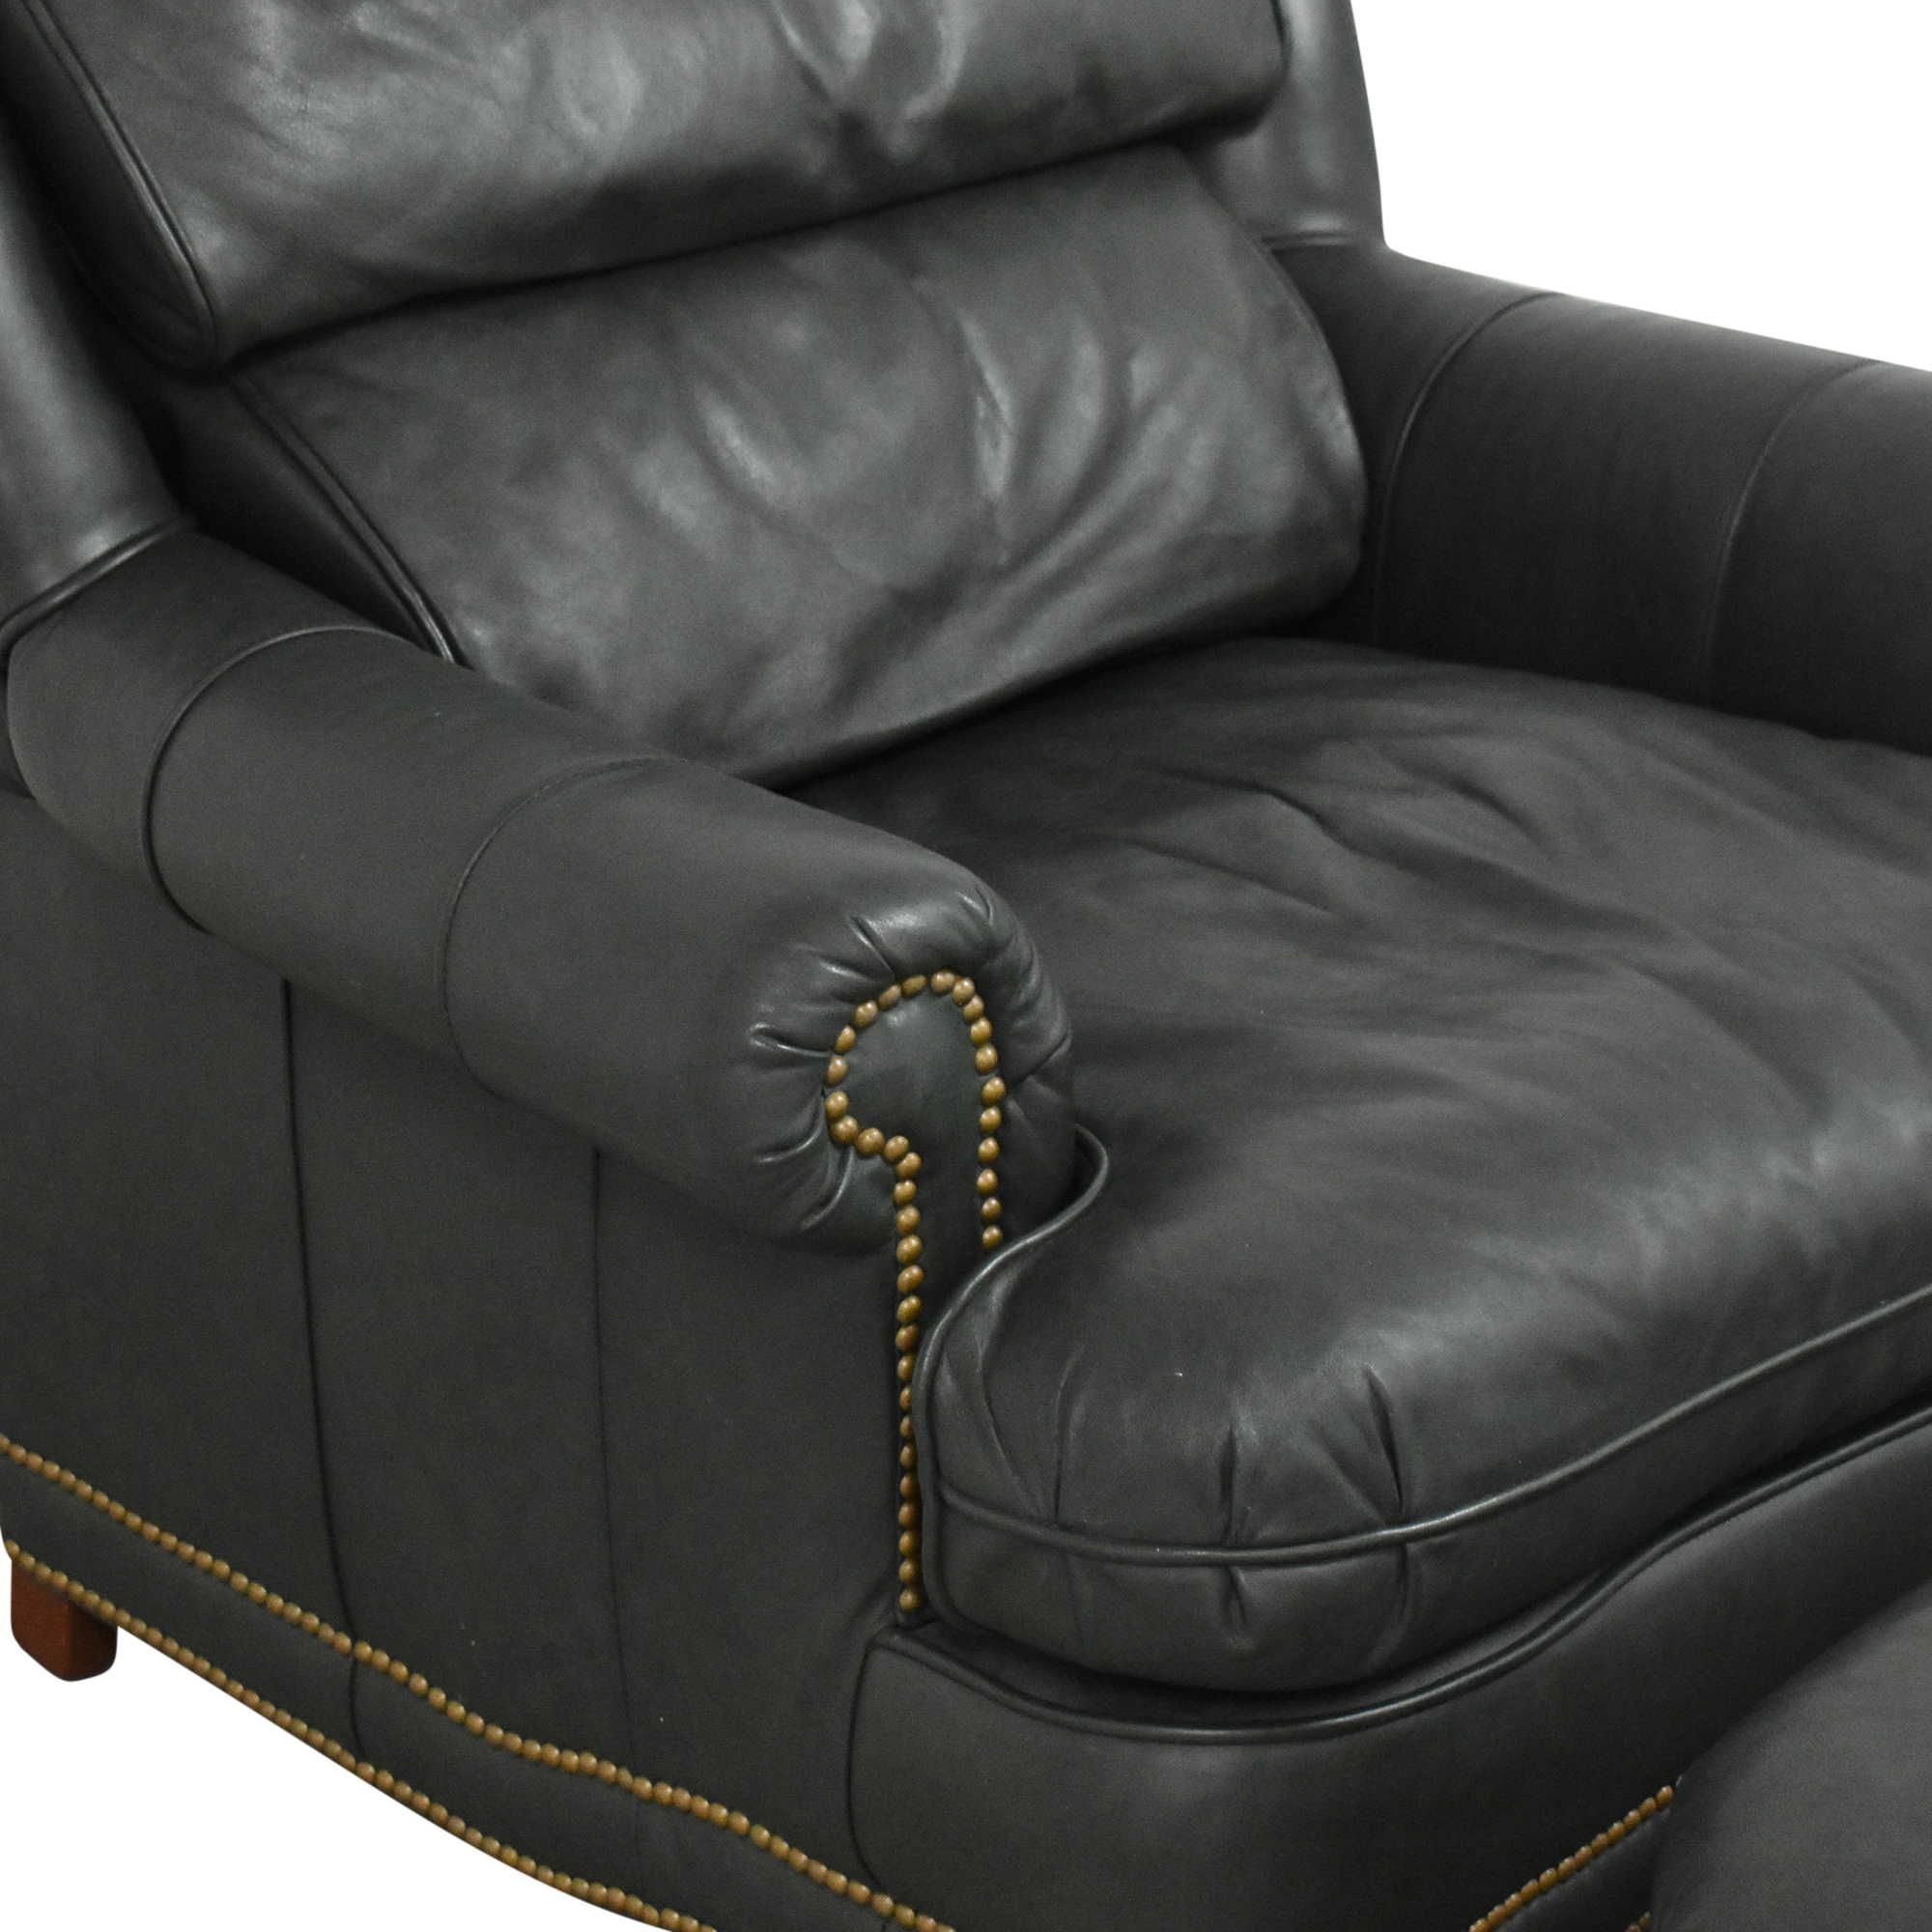 King Hickory King Hickory Club Chair with Ottoman on sale